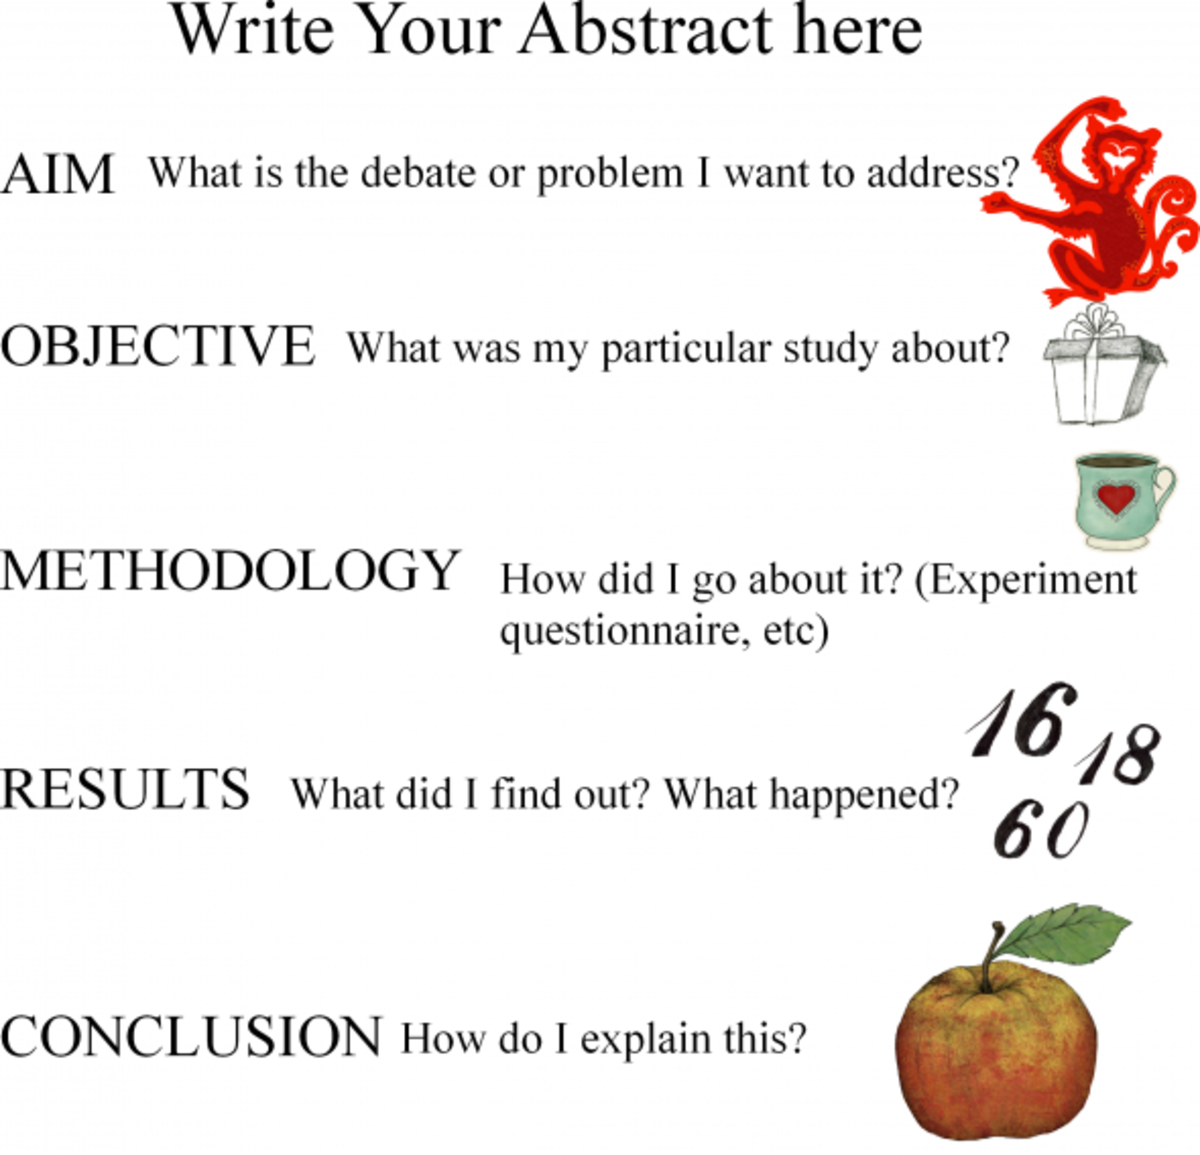 How do you write abstract?